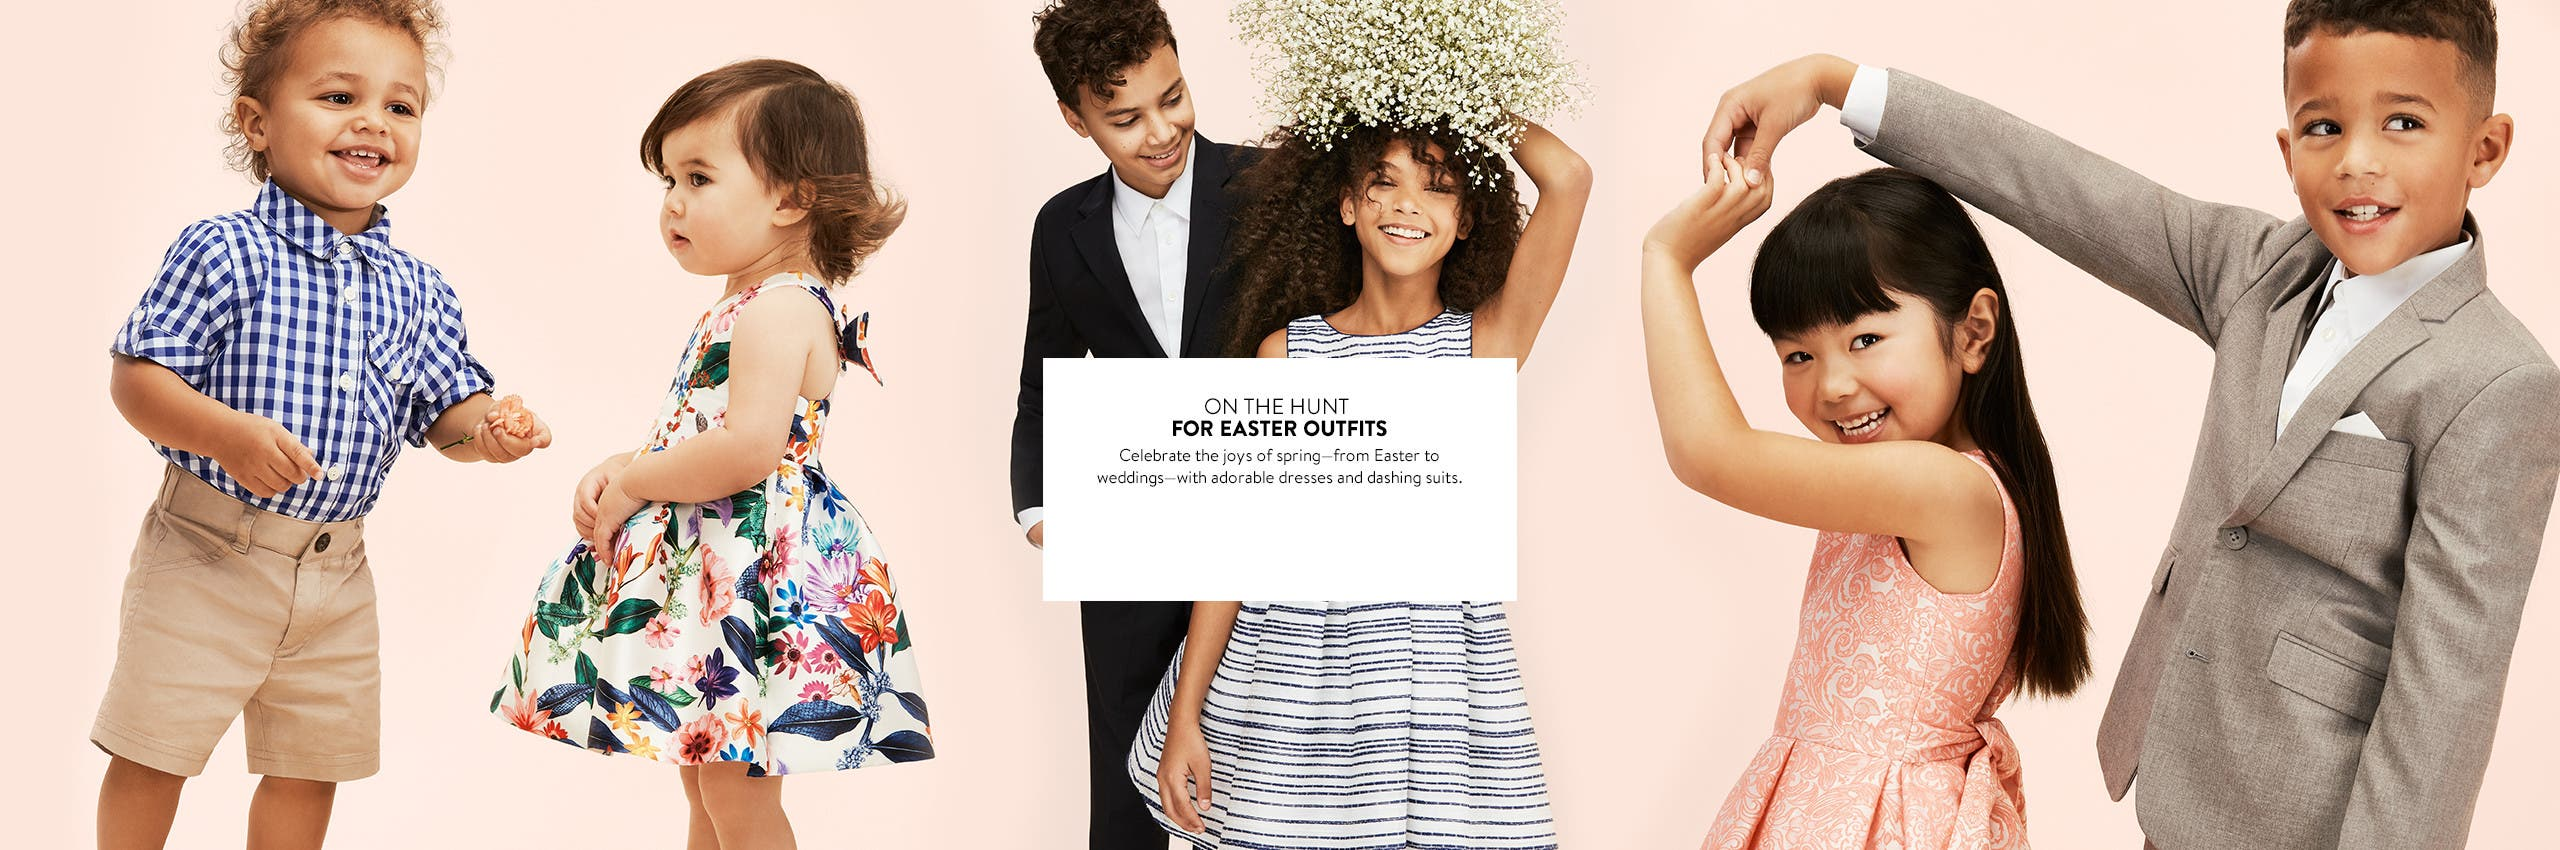 Kids' Clothes, Baby Clothes, Accessories & Gifts   Nordstrom